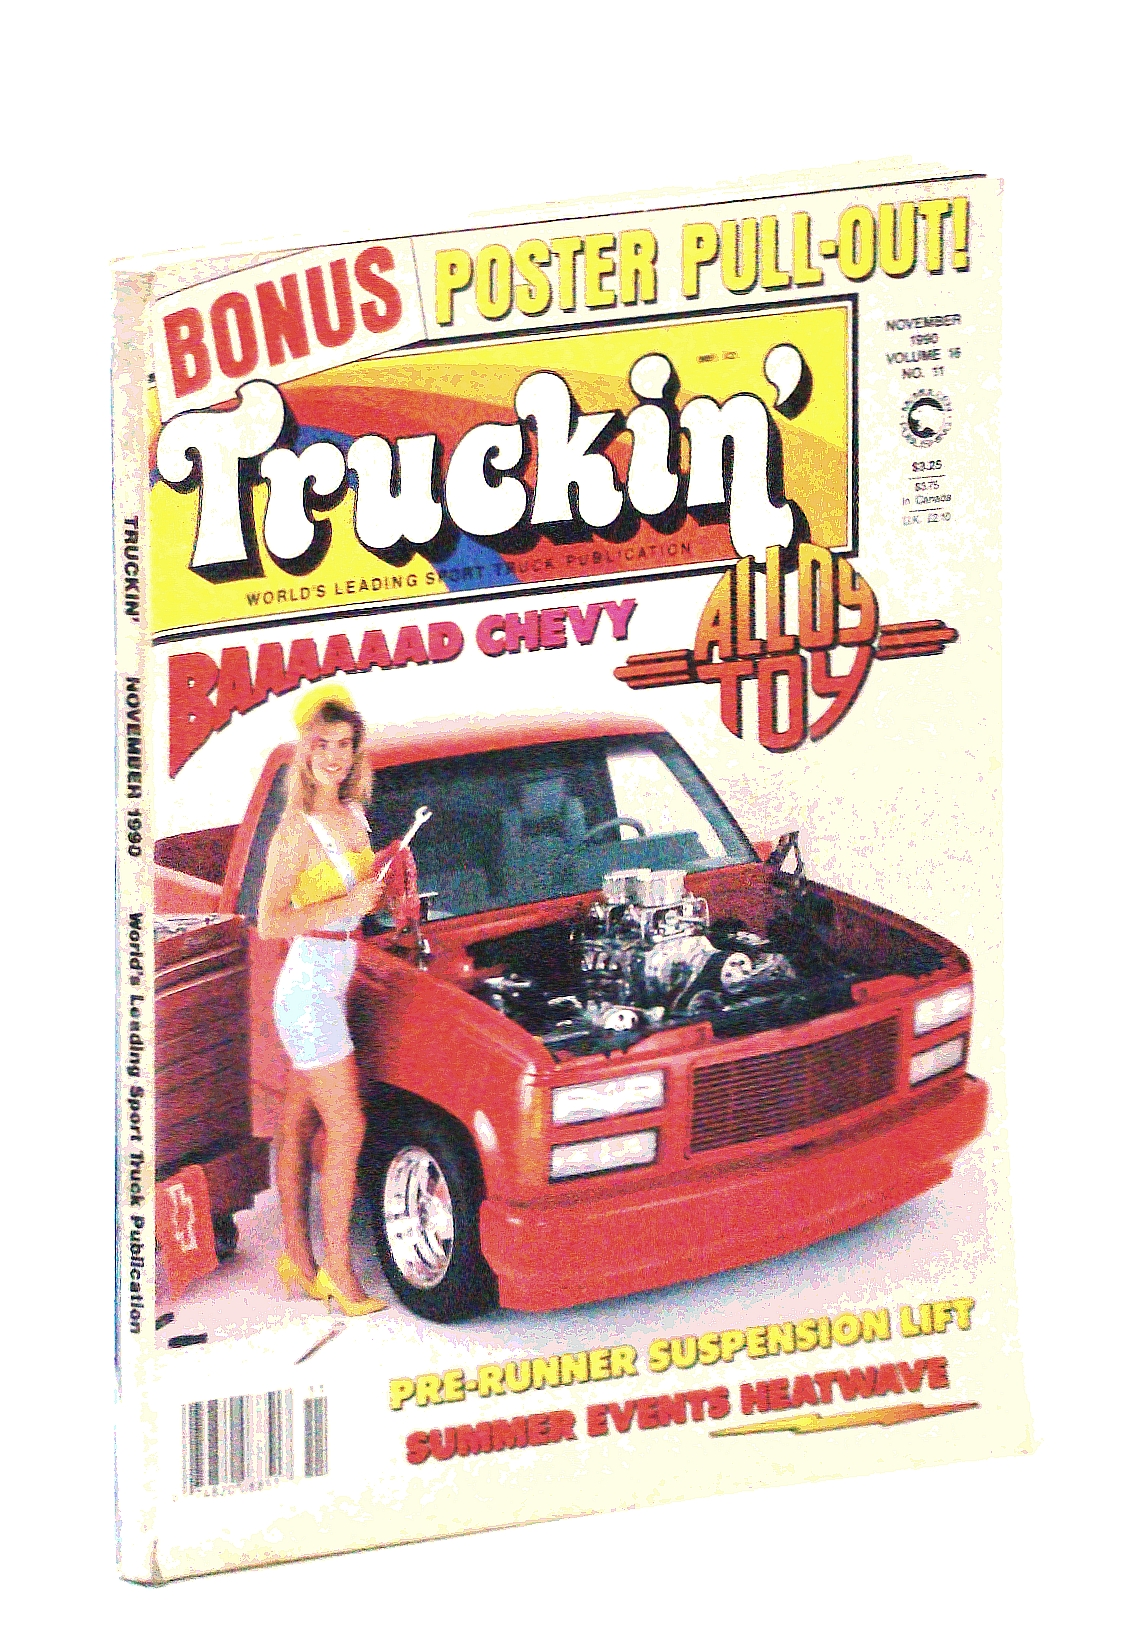 Image for Truckin' November 1990 (BONUS POSTER PULL-OUT! - PRE-RUNNER SUSPENSION LIFT - SUMMER EVENTS HEATWAVE, VOLUME 16, VOLUME 11)